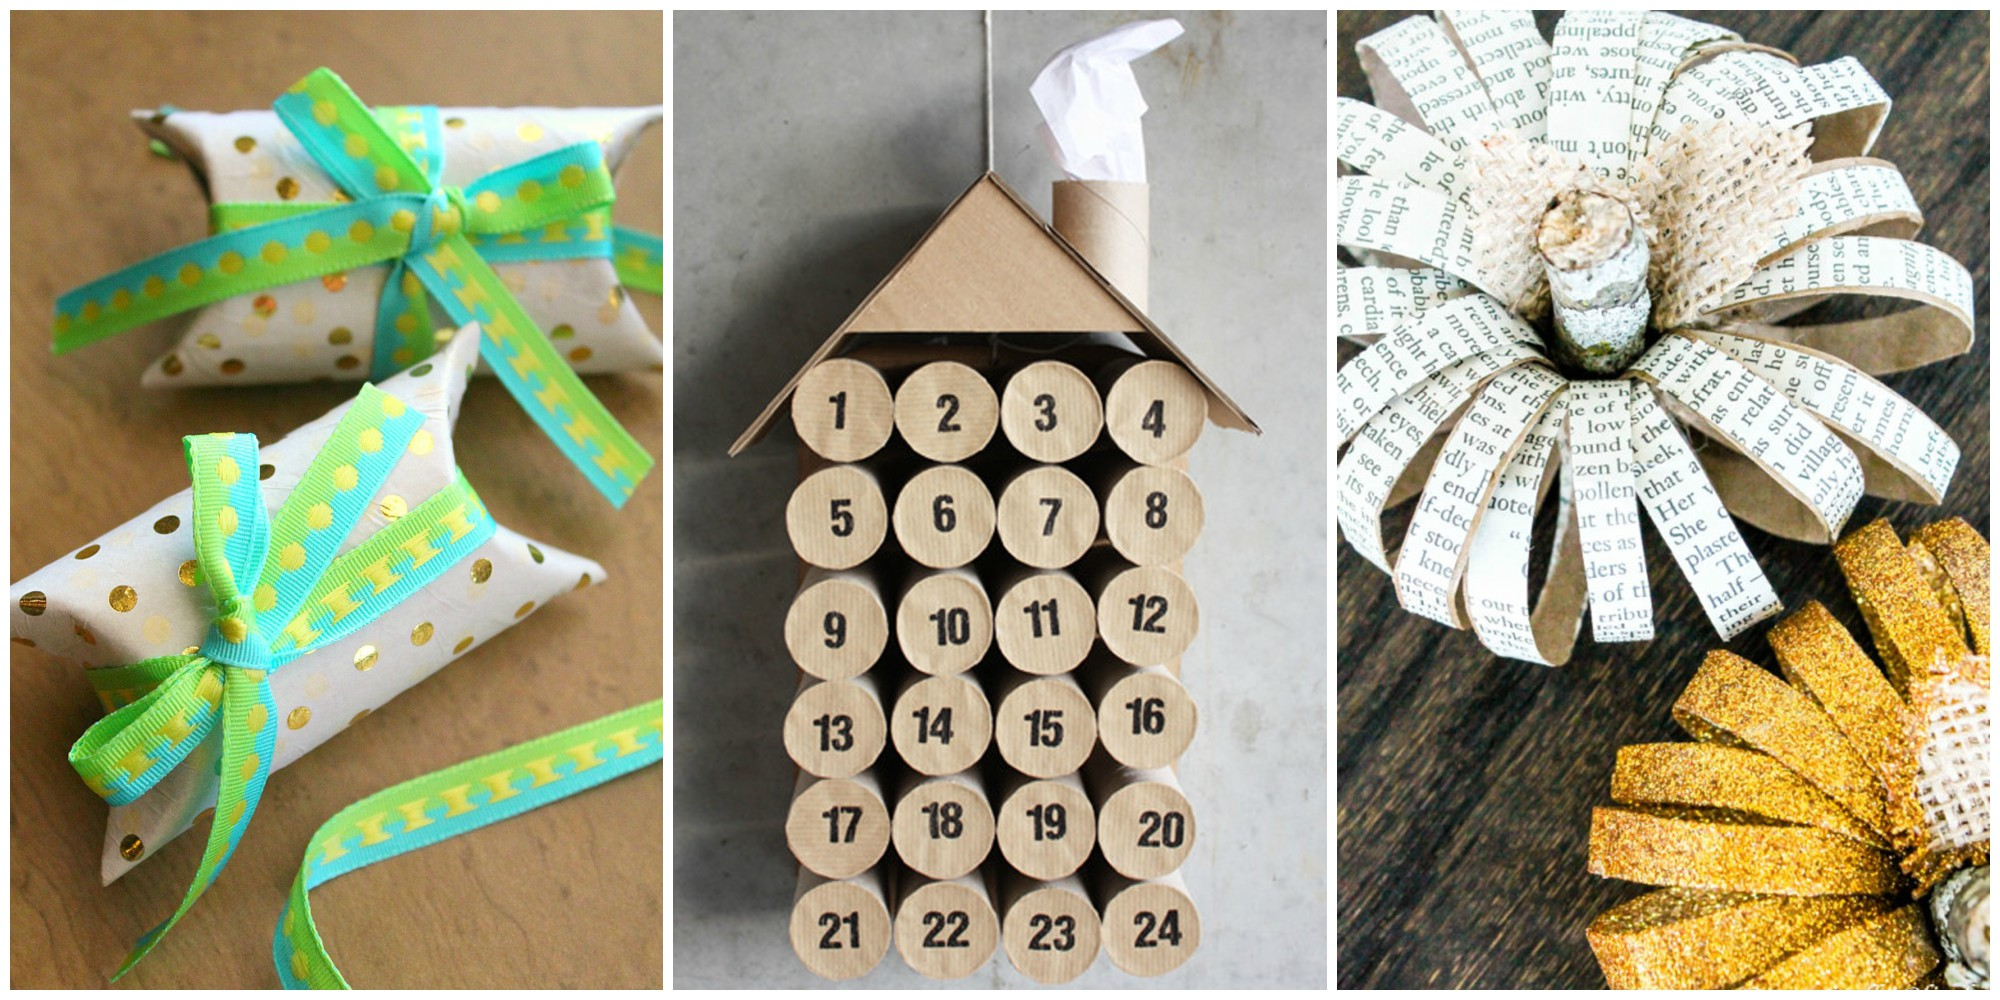 12 best toilet paper roll crafts for adults and kids diy for Toilet paper roll crafts for adults